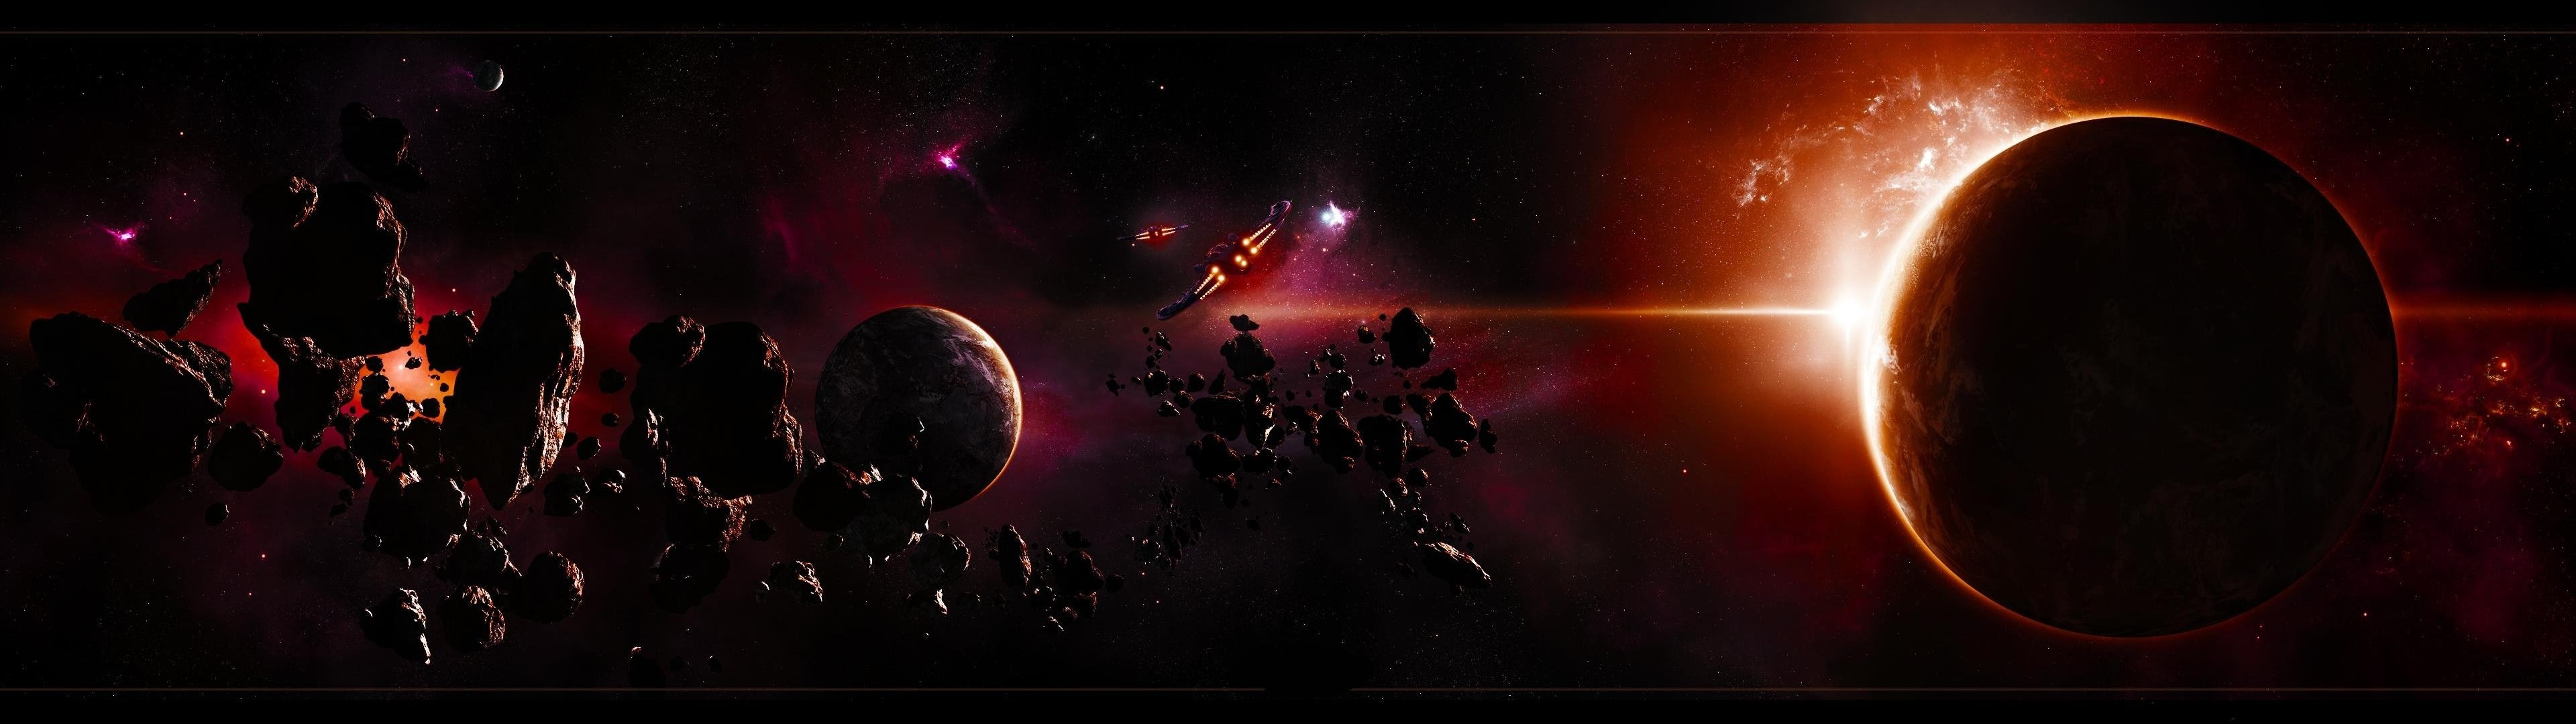 3840x1080 Wallpaper Space 74 Images